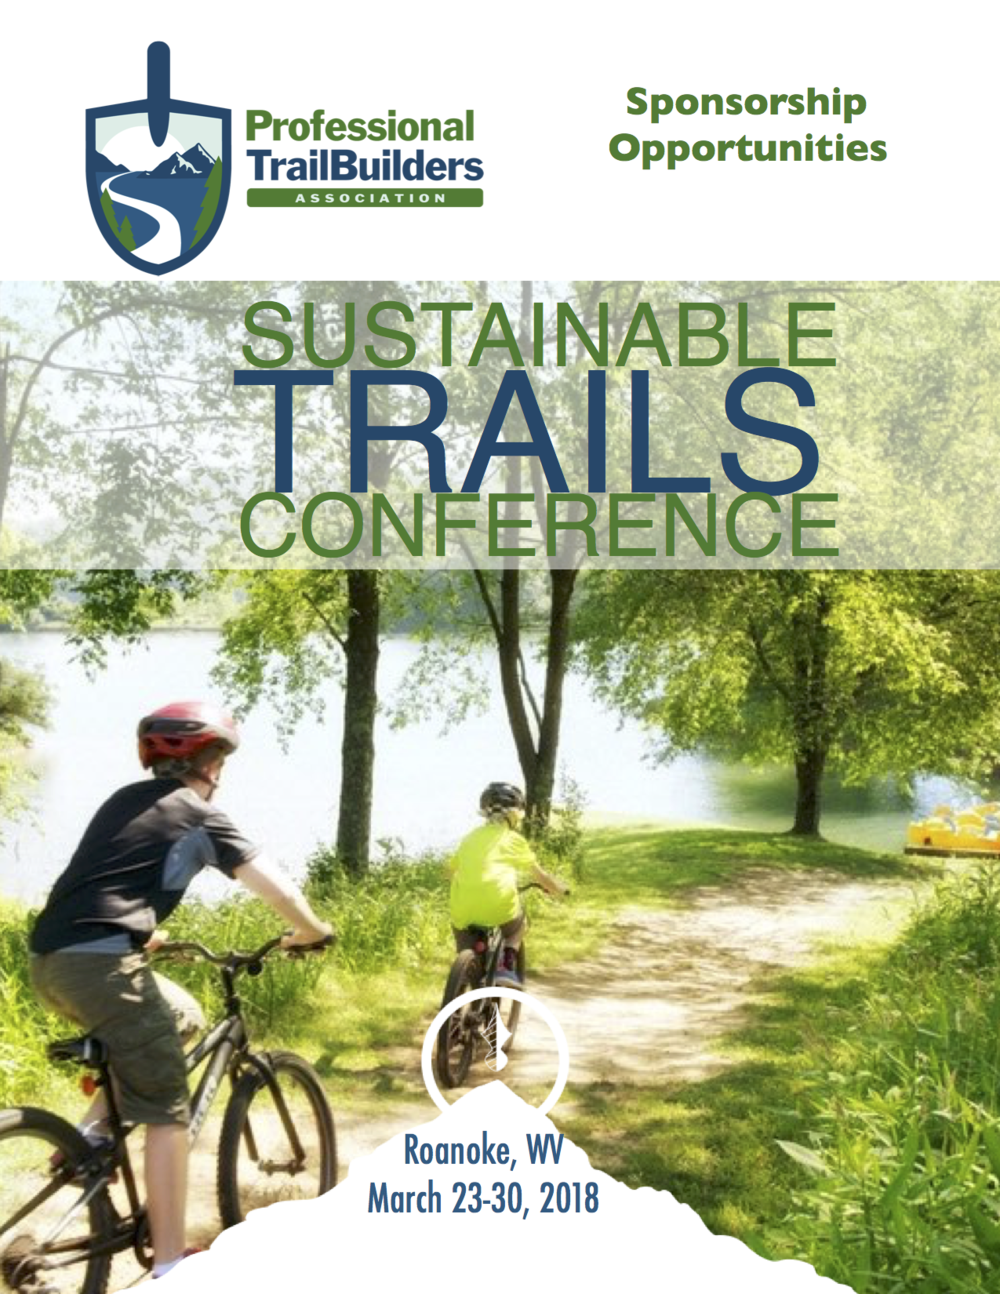 Sponsor the 2018 Sustainable Trails Conference - Don't miss this opportunity to build your brand and introduce your product, service, and company to the largest gathering of trail professionals in 2018! Get noticed by 225-325 attendees as a sponsor of the 2018 PTBA Sustainable Trails Conference! PTBA provides a variety of highly visible sponsorship opportunities and a robust package of benefits to each participating sponsor.